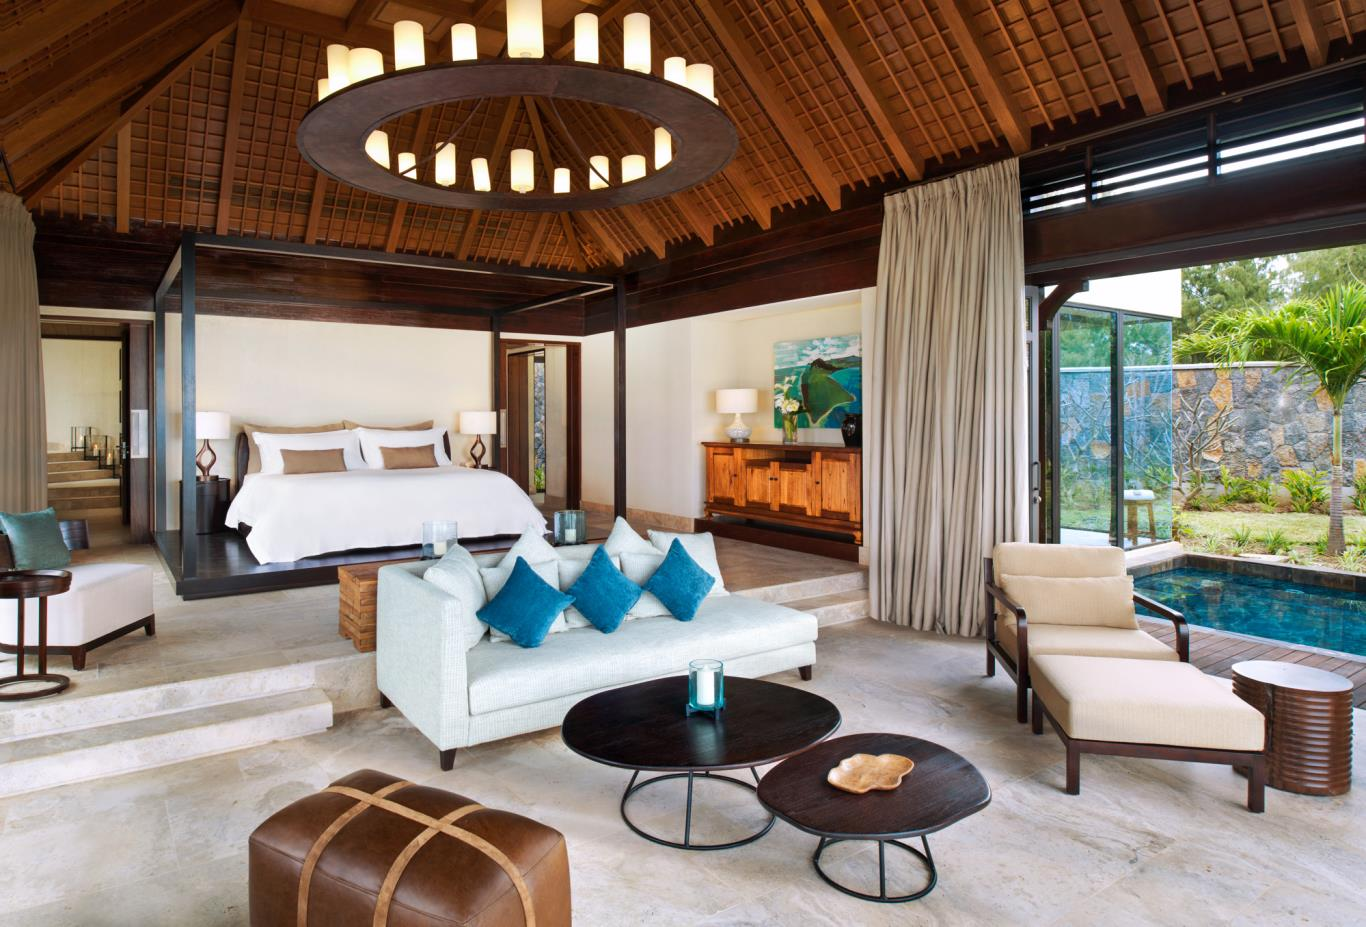 The St Regis Villa master bedroom